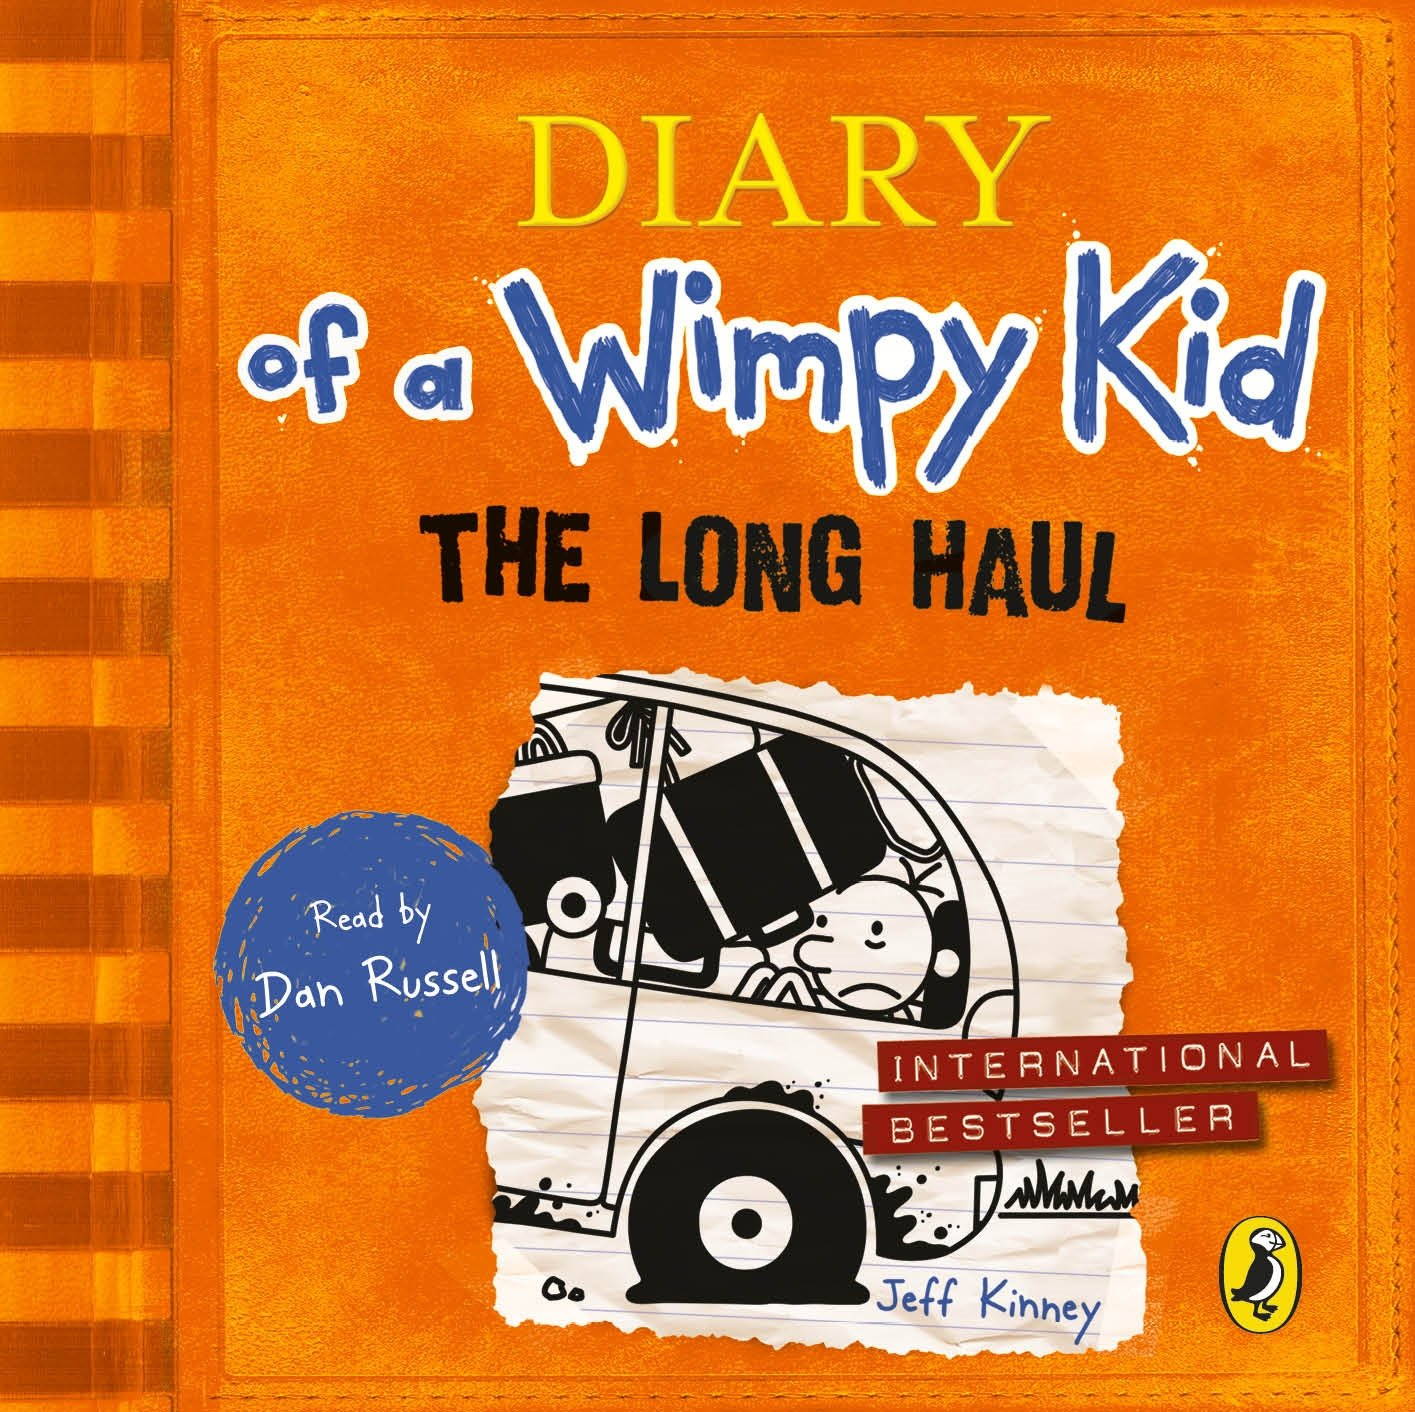 The long haul diary of a wimpy kid book 9 amazon jeff the long haul diary of a wimpy kid book 9 amazon jeff kinney dan russell 8601410717377 books solutioingenieria Images